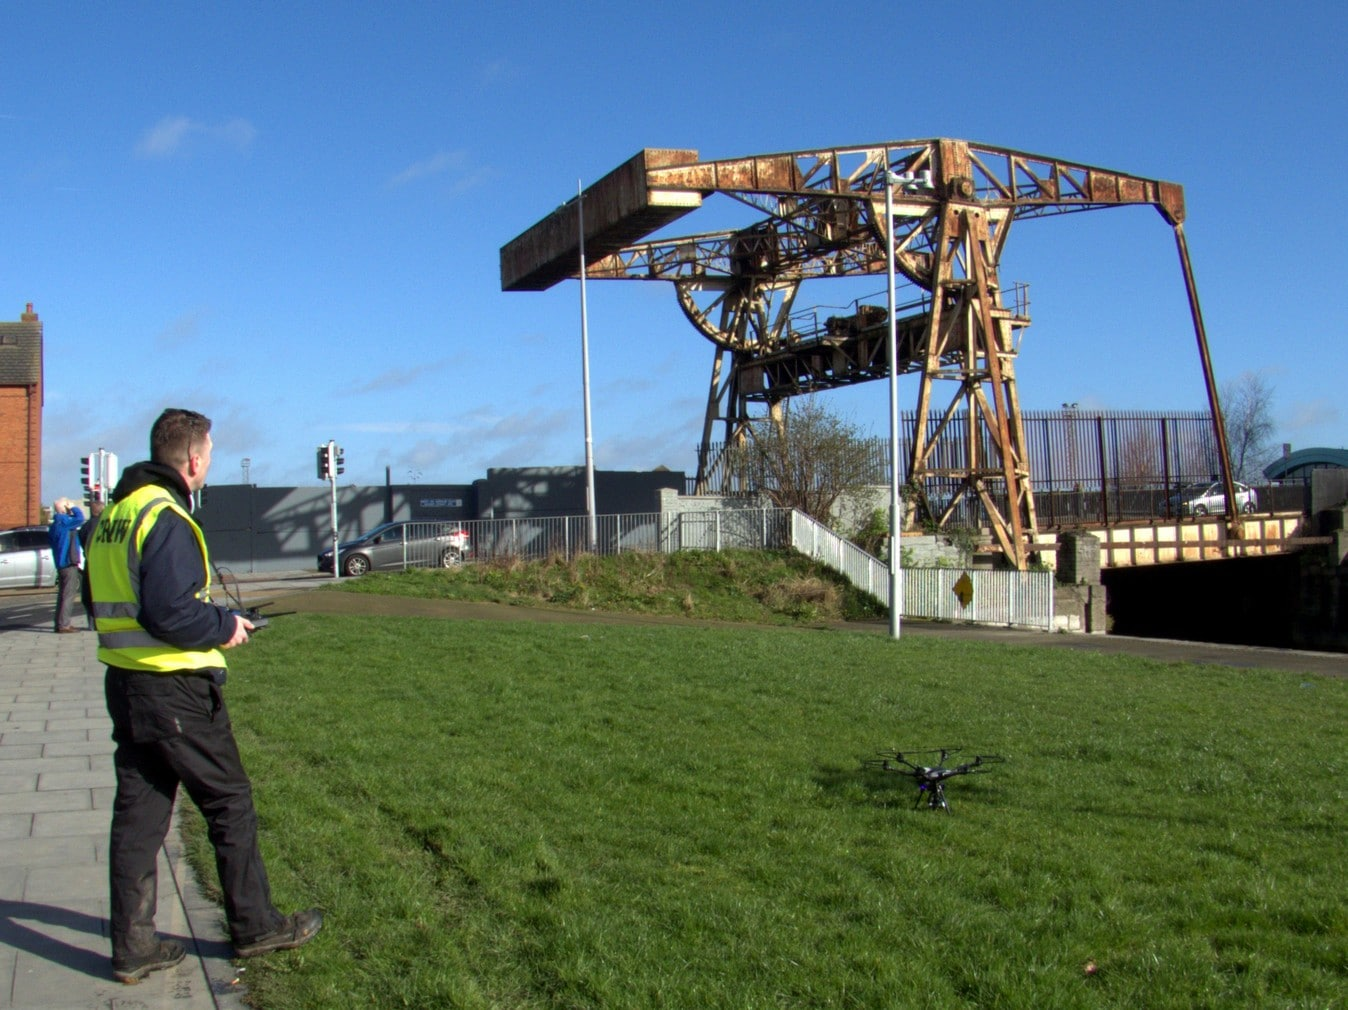 Ian Kiely of Drone Tech & Expo Ireland inspecting the iron bridge at Sheriff Street, Dublin, Ireland